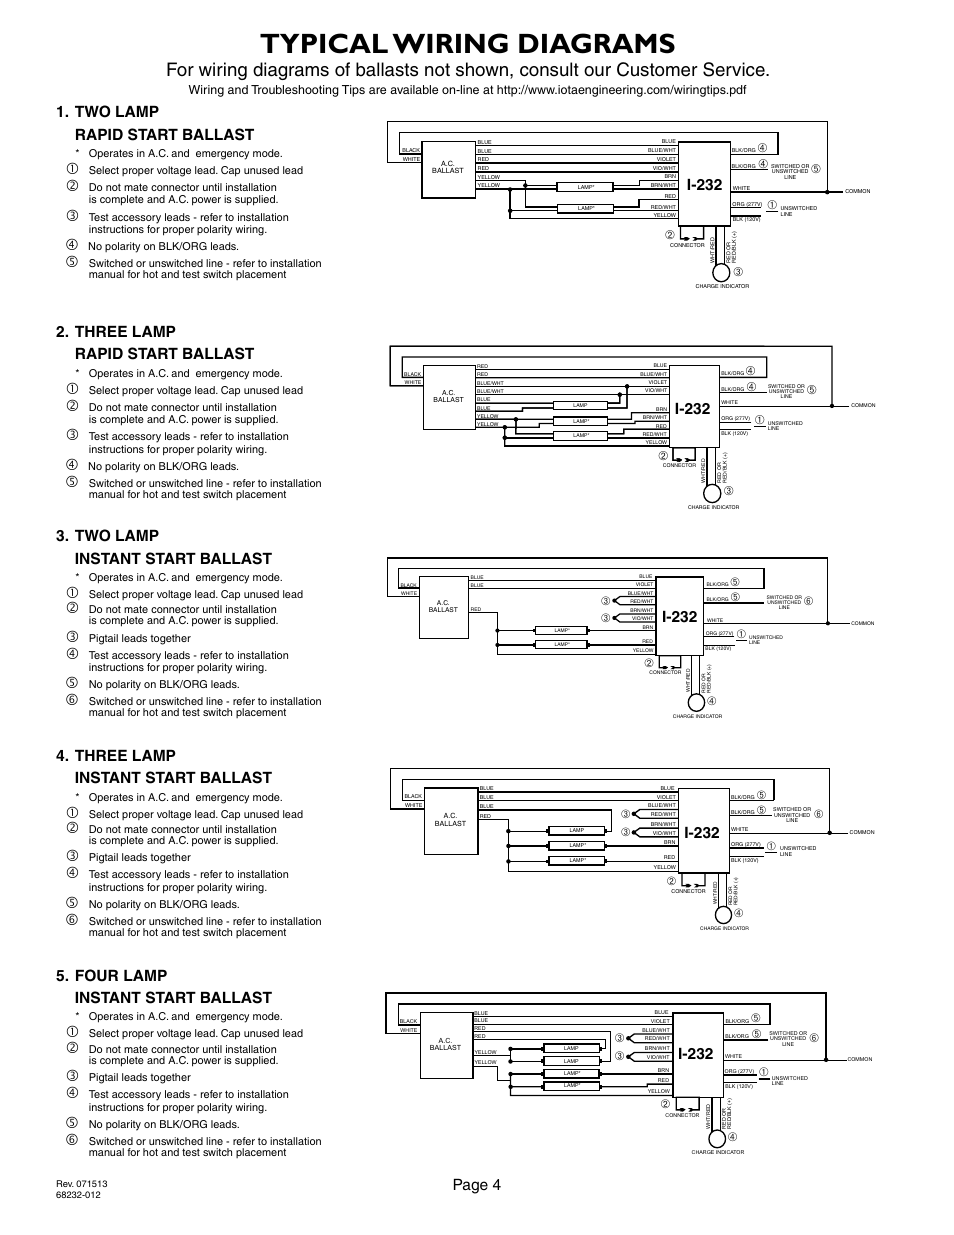 typical wiring diagrams page 4 i 232 iota i 232 user manual rh manualsdir com  4 lamp instant start ballast wiring diagram